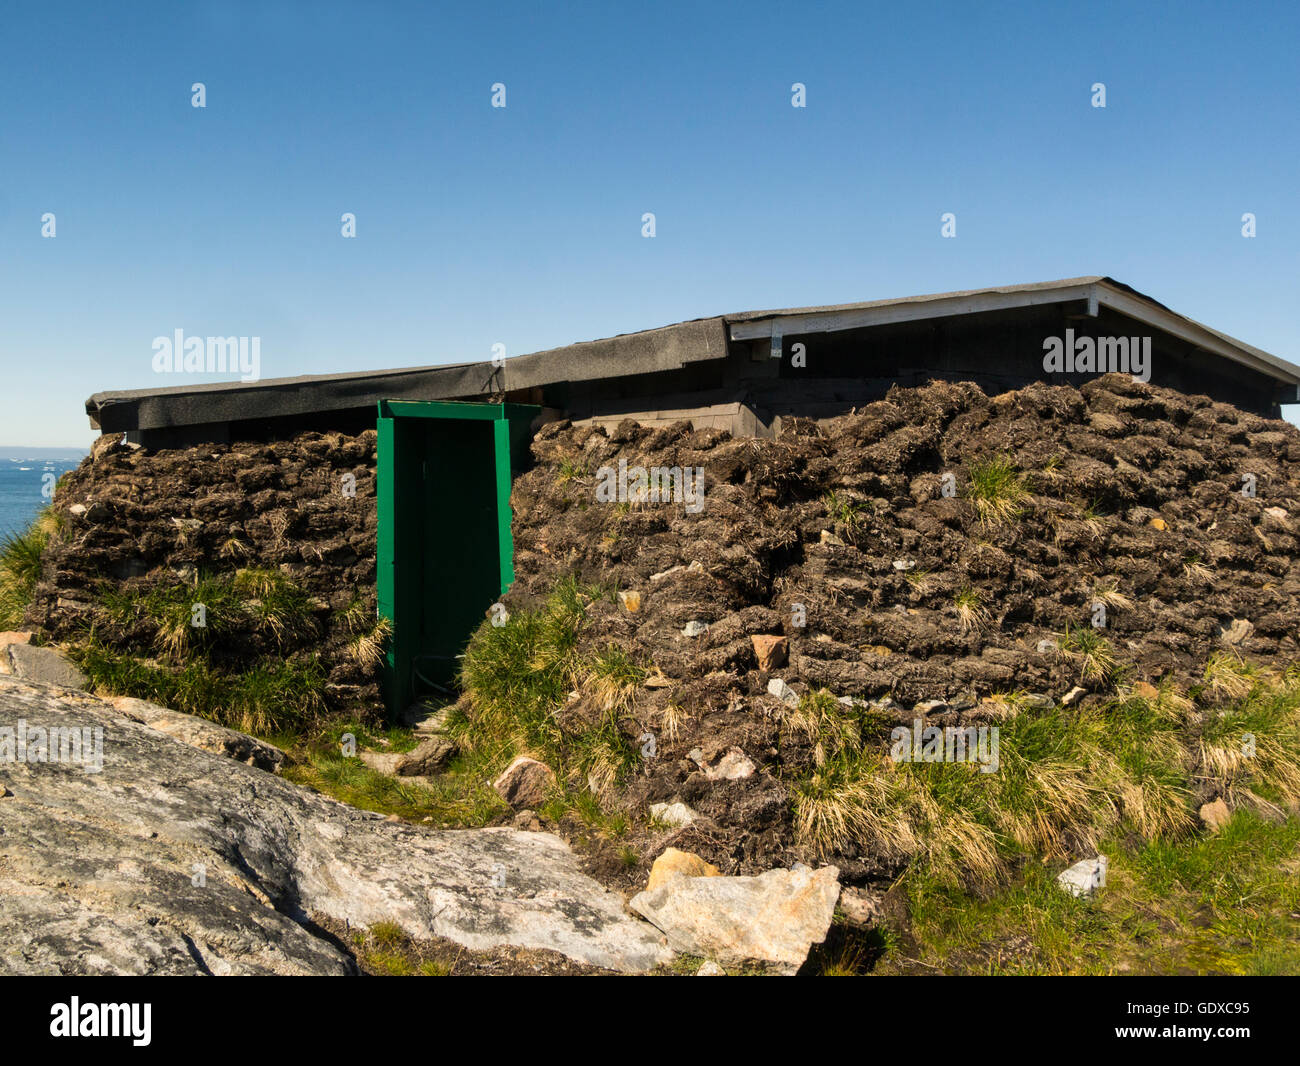 Turf peat house used by Inuits as winter home Ilulissat is a town in Qaasuitsup municipality in western Greenland - Stock Image